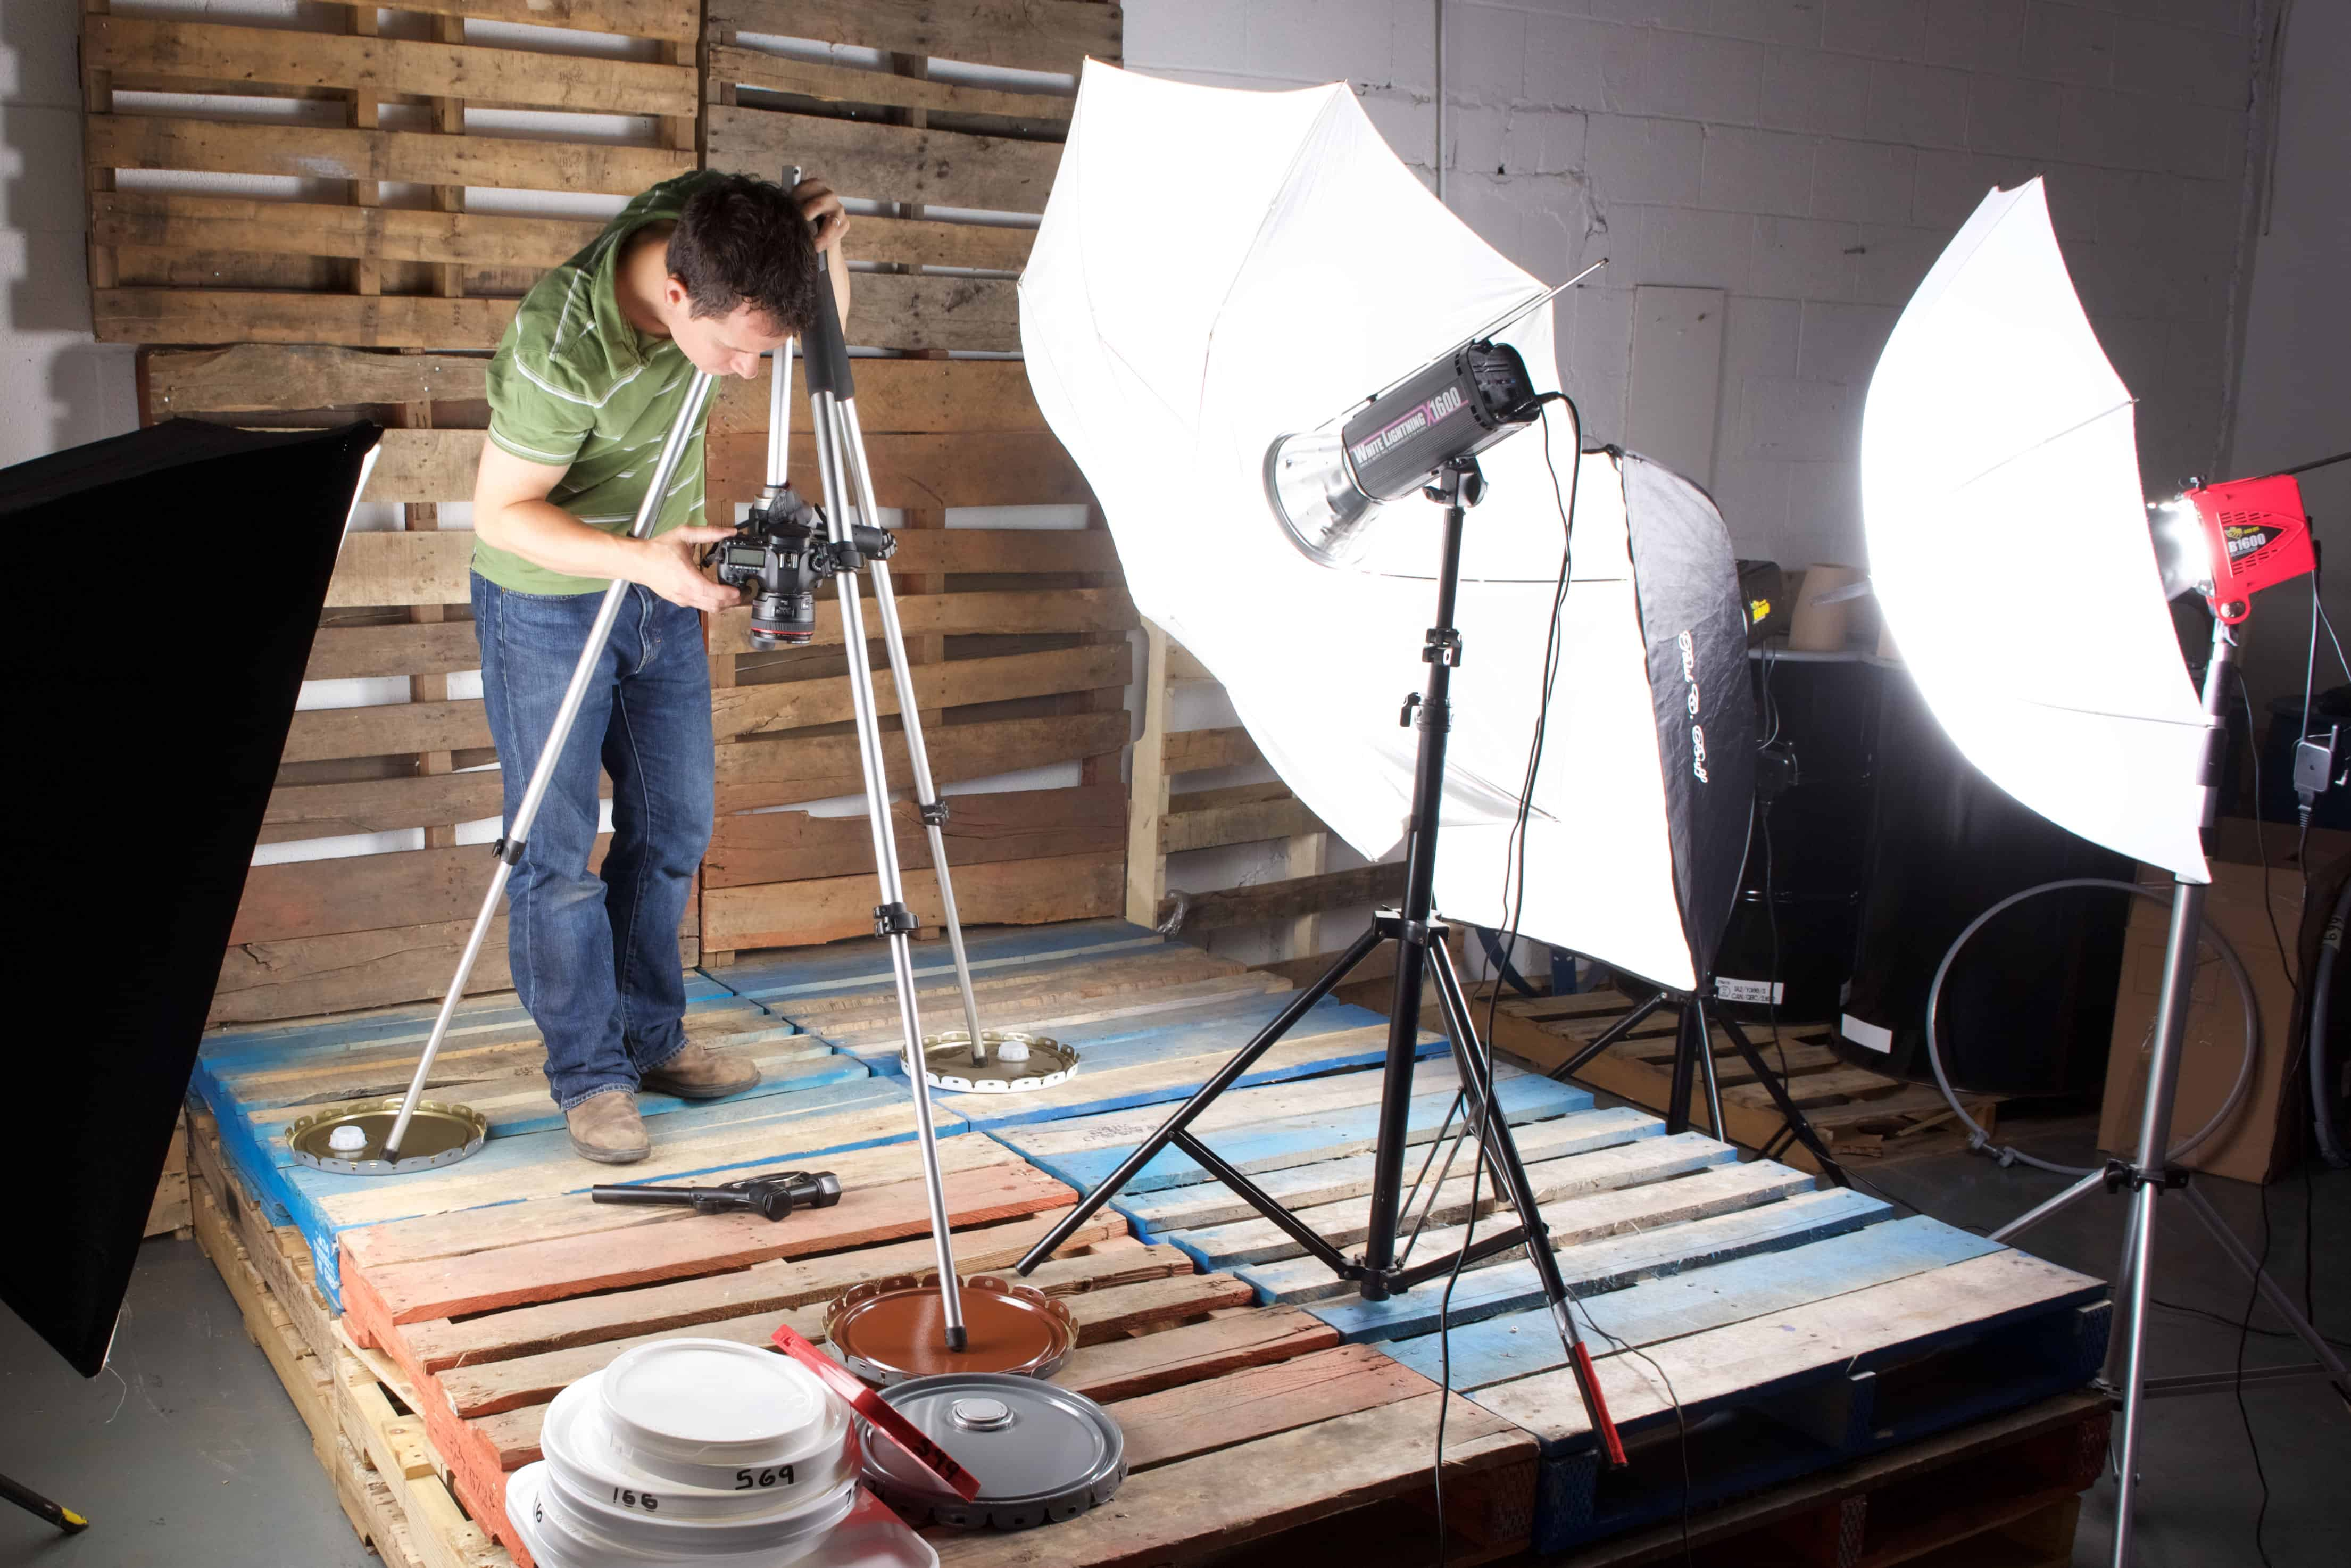 A day in the life of a working professional photographer